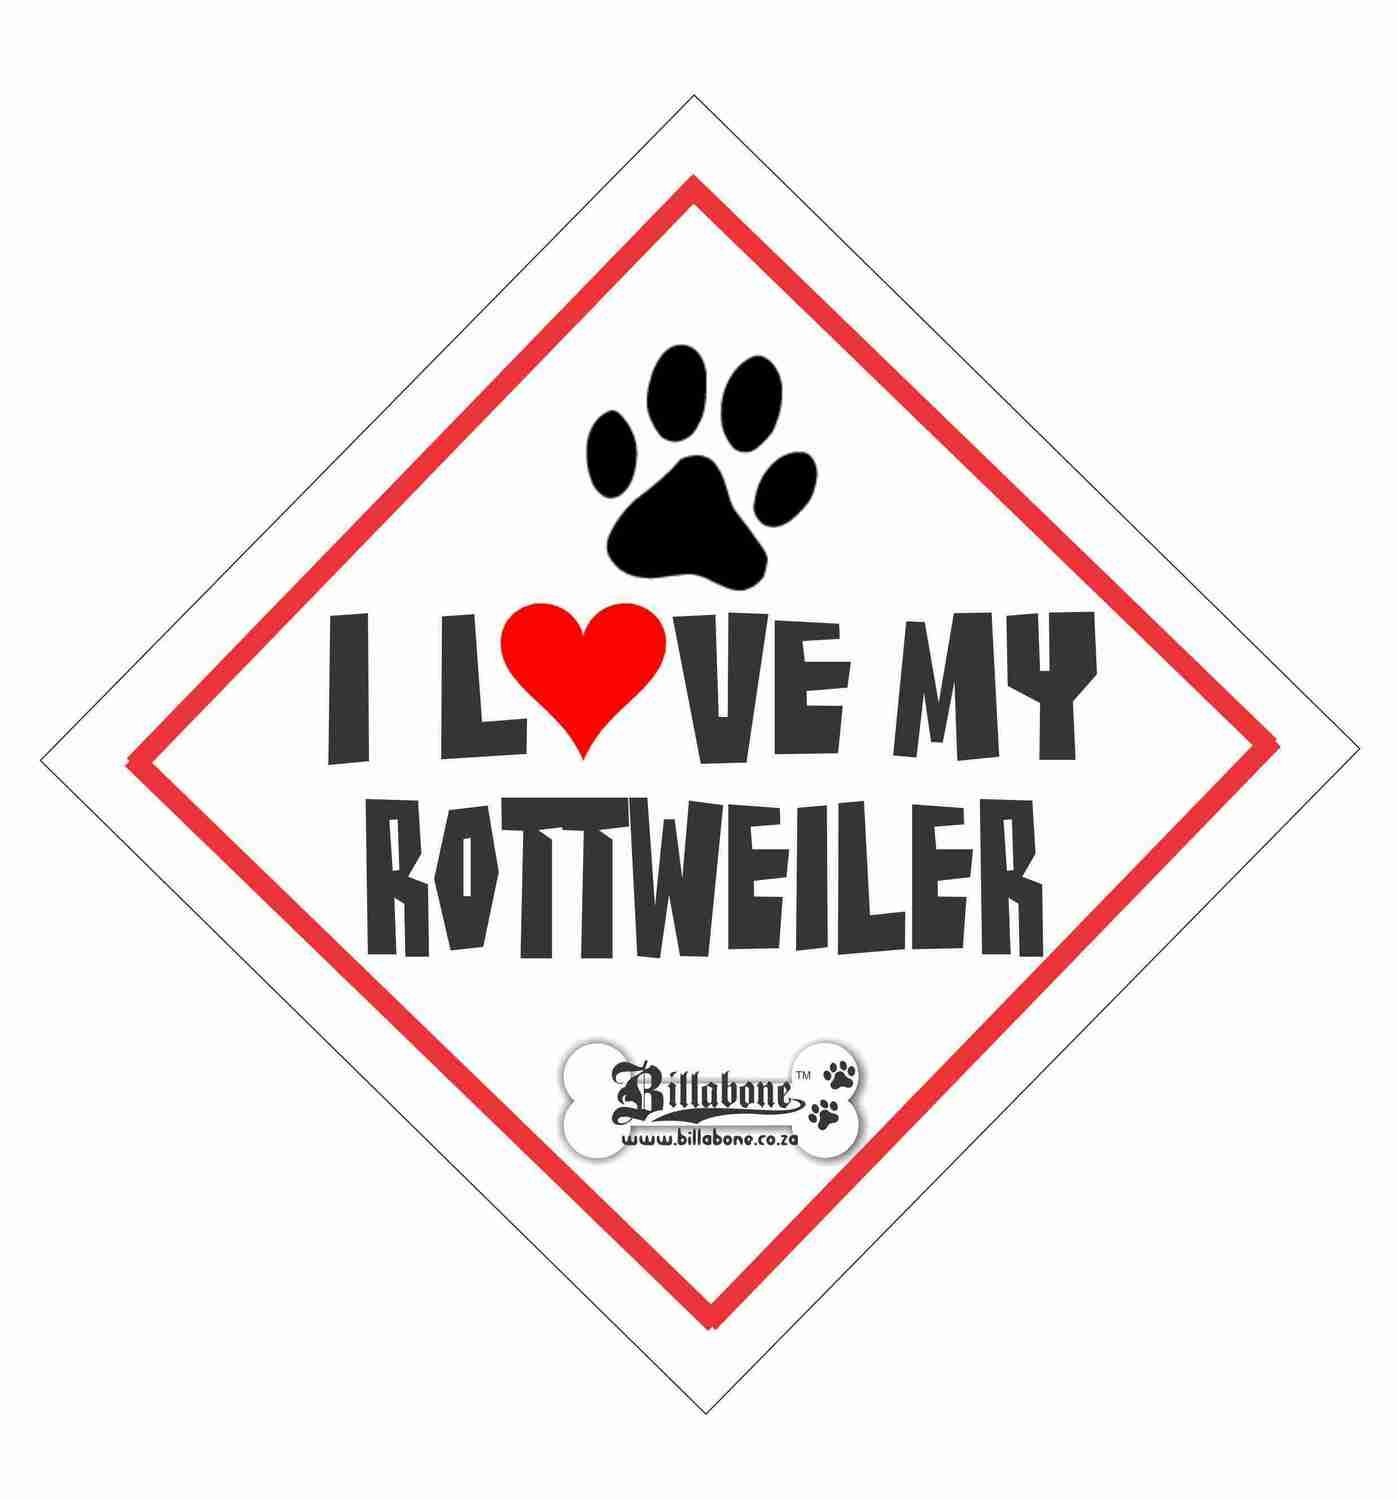 Billabone - I love my Rottweiler On Board Sign or Decal